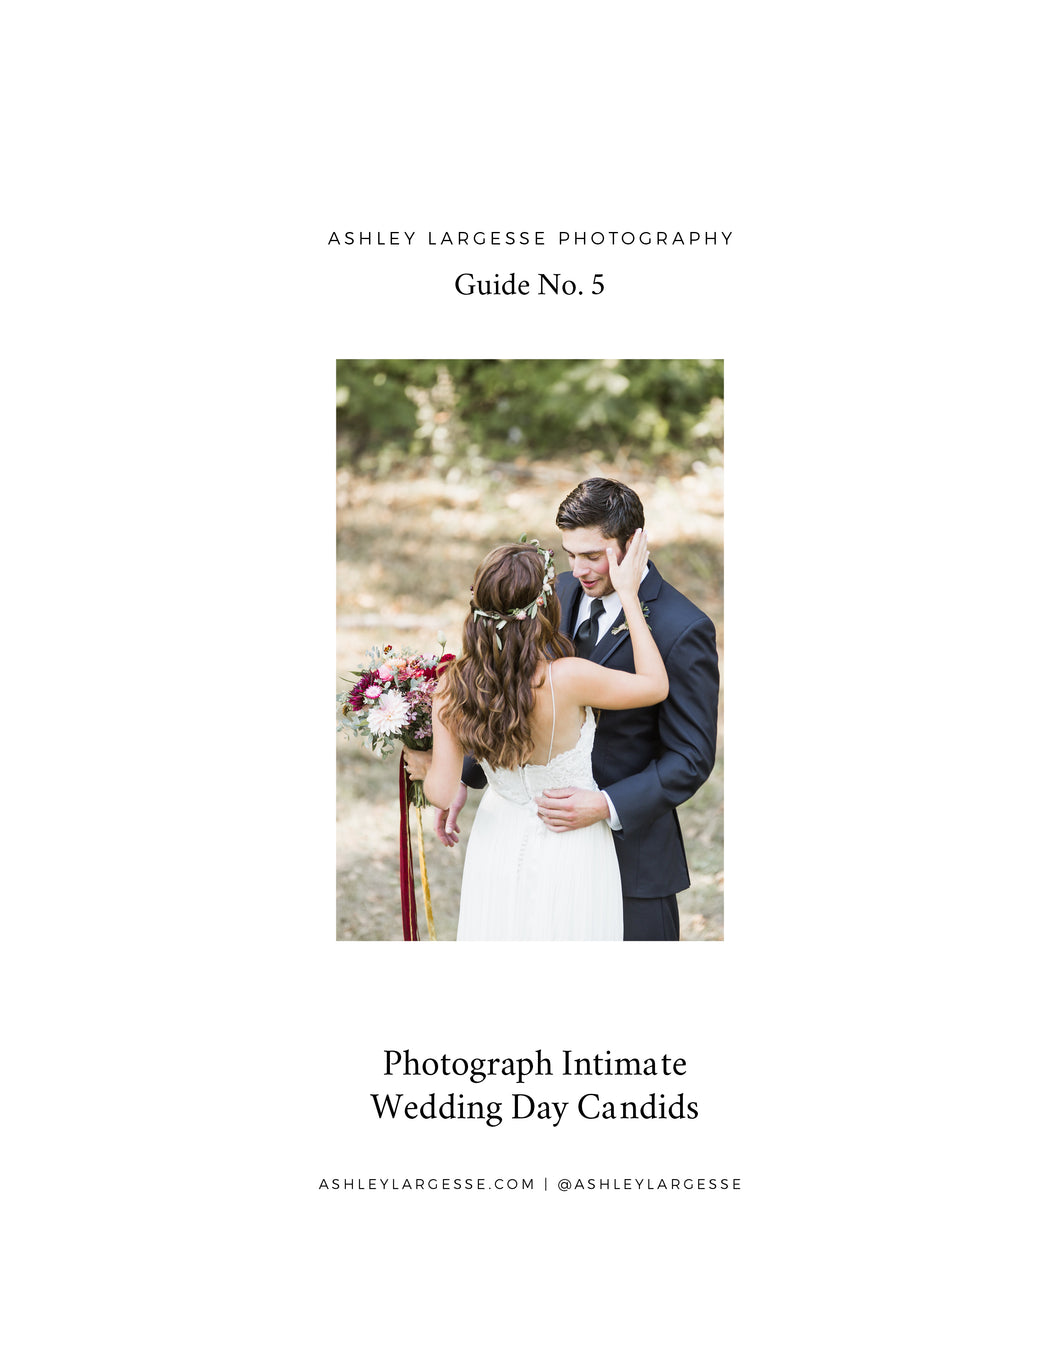 Photograph Intimate Wedding Day Candids